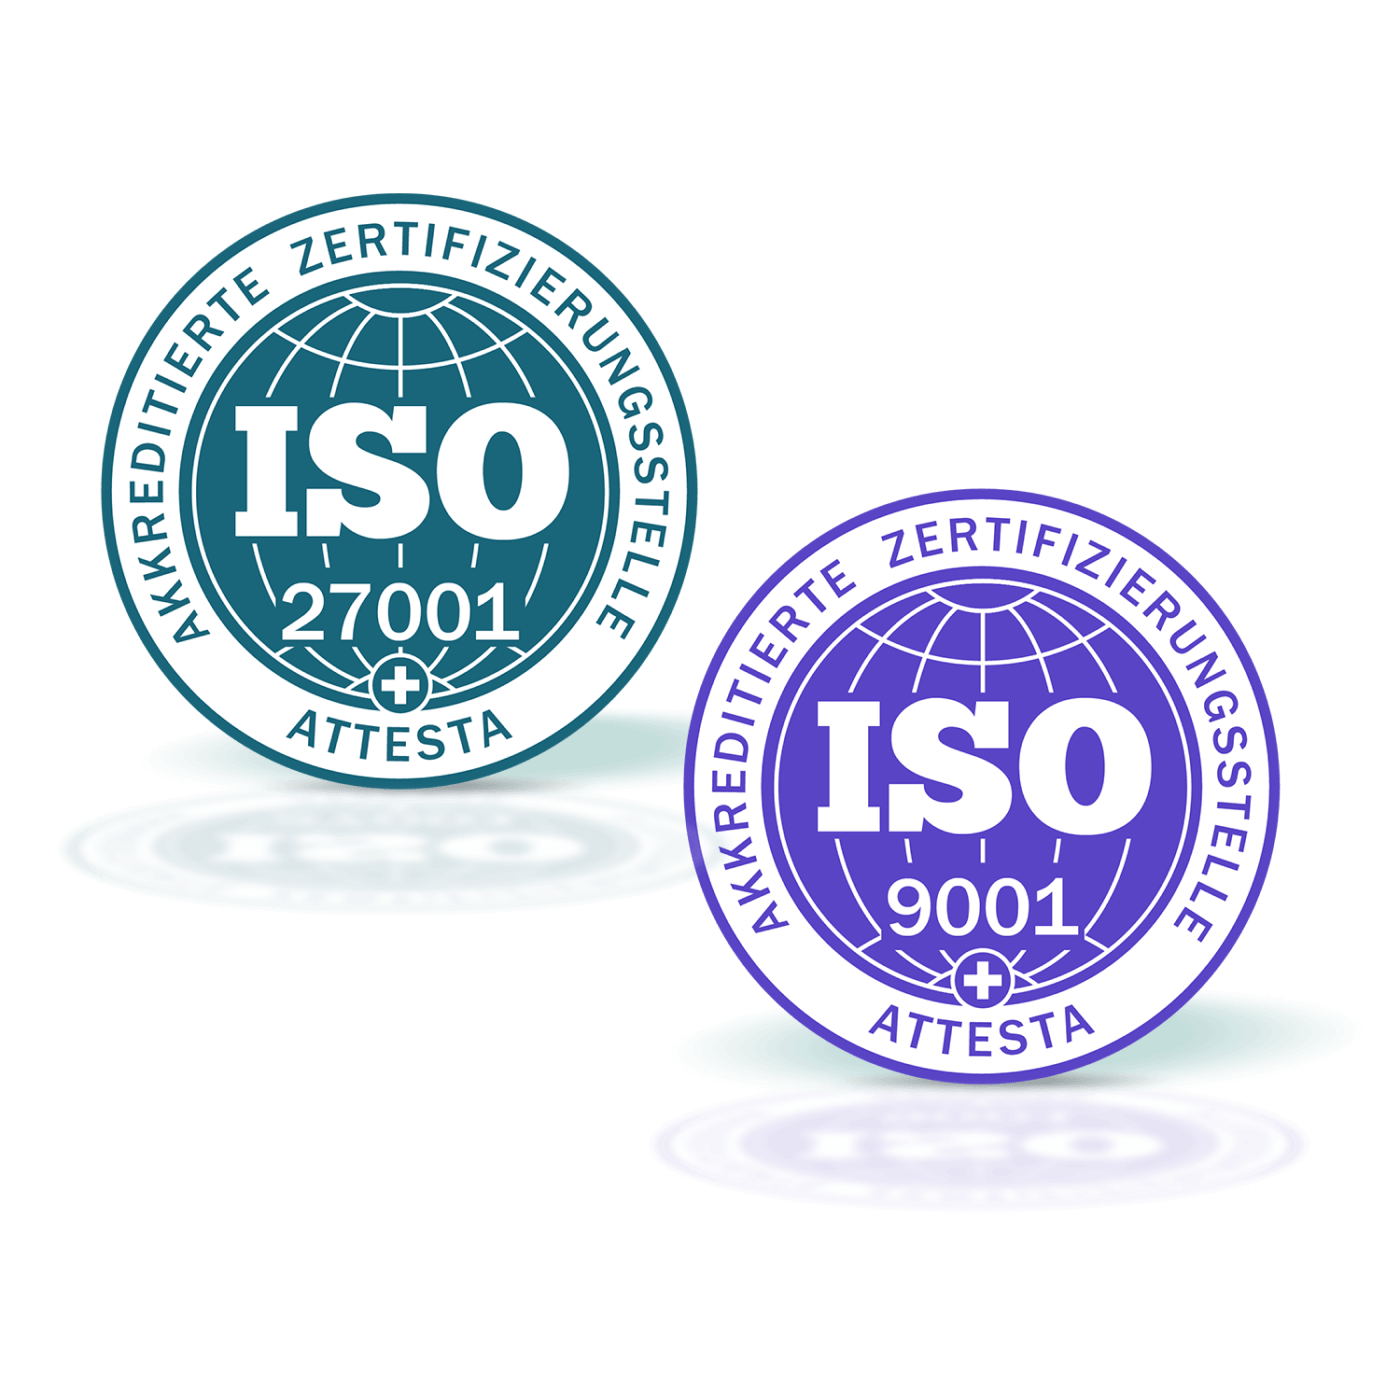 ISO 9001 and 27001 certified!